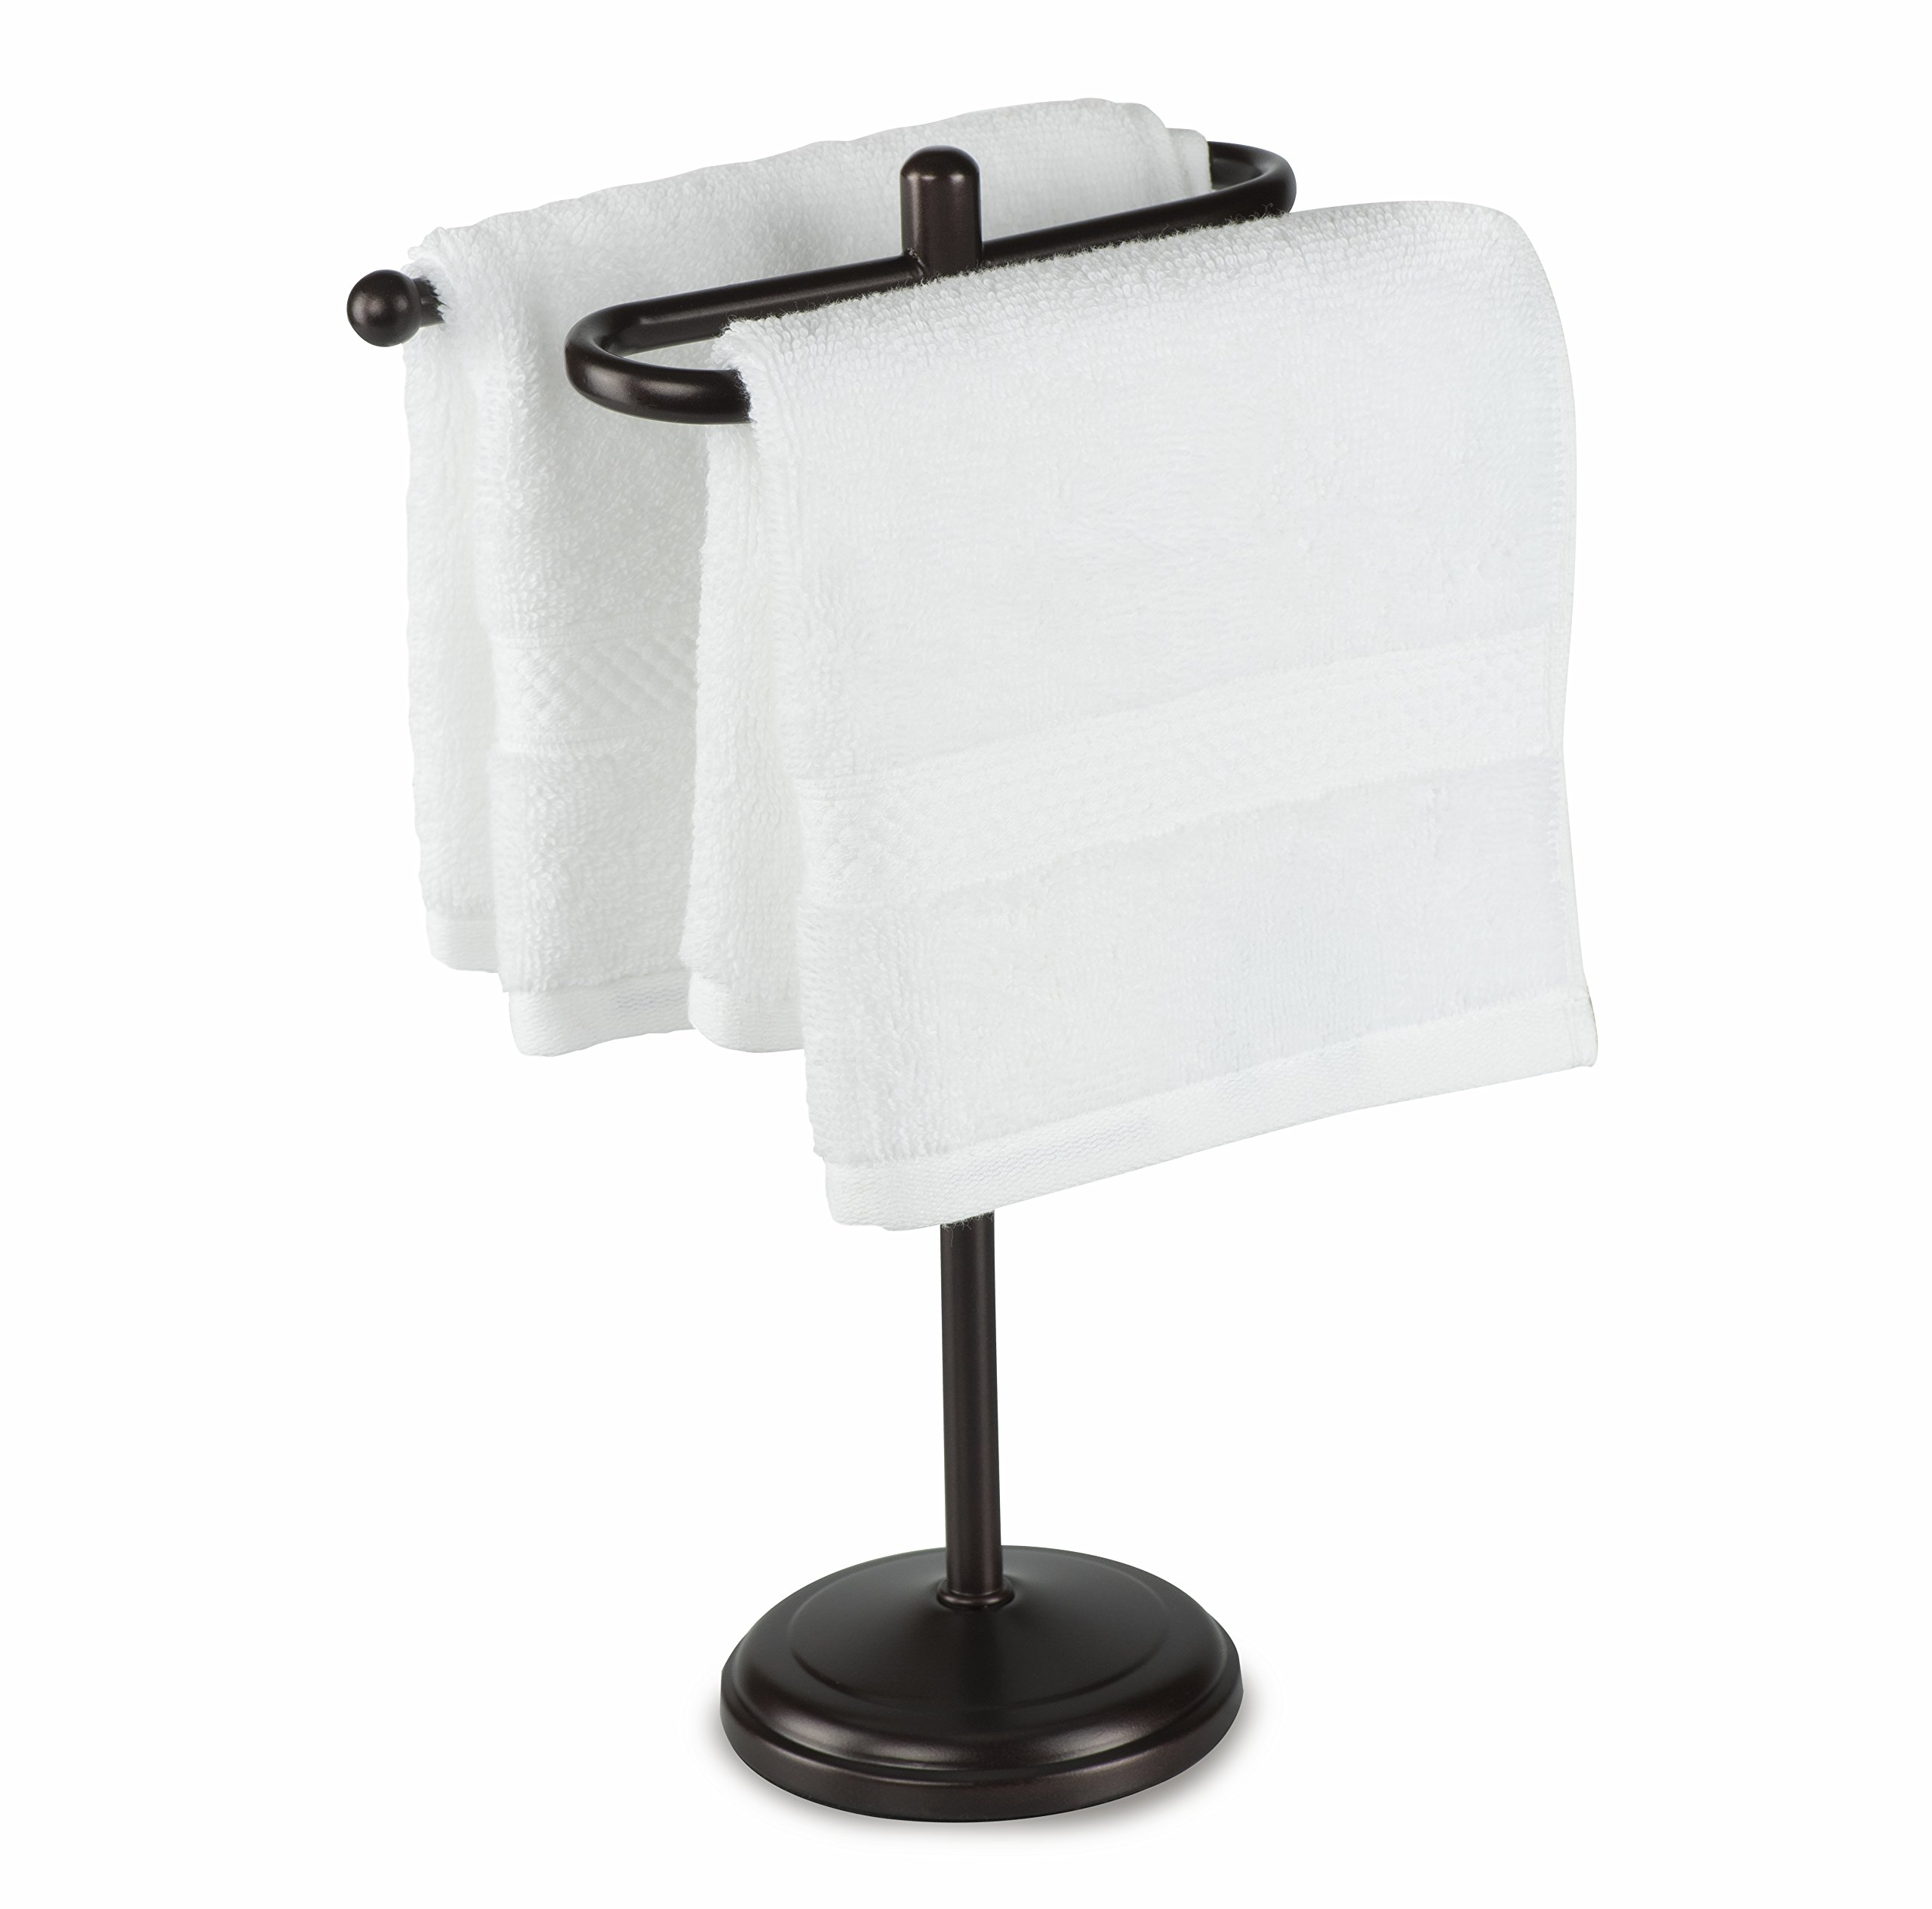 AMG and Enchante Accessories, Free Standing Fingertip Hand Towel Bar Holder Tree Rack, TT100006 ORB, Oil Rubbed Bronze